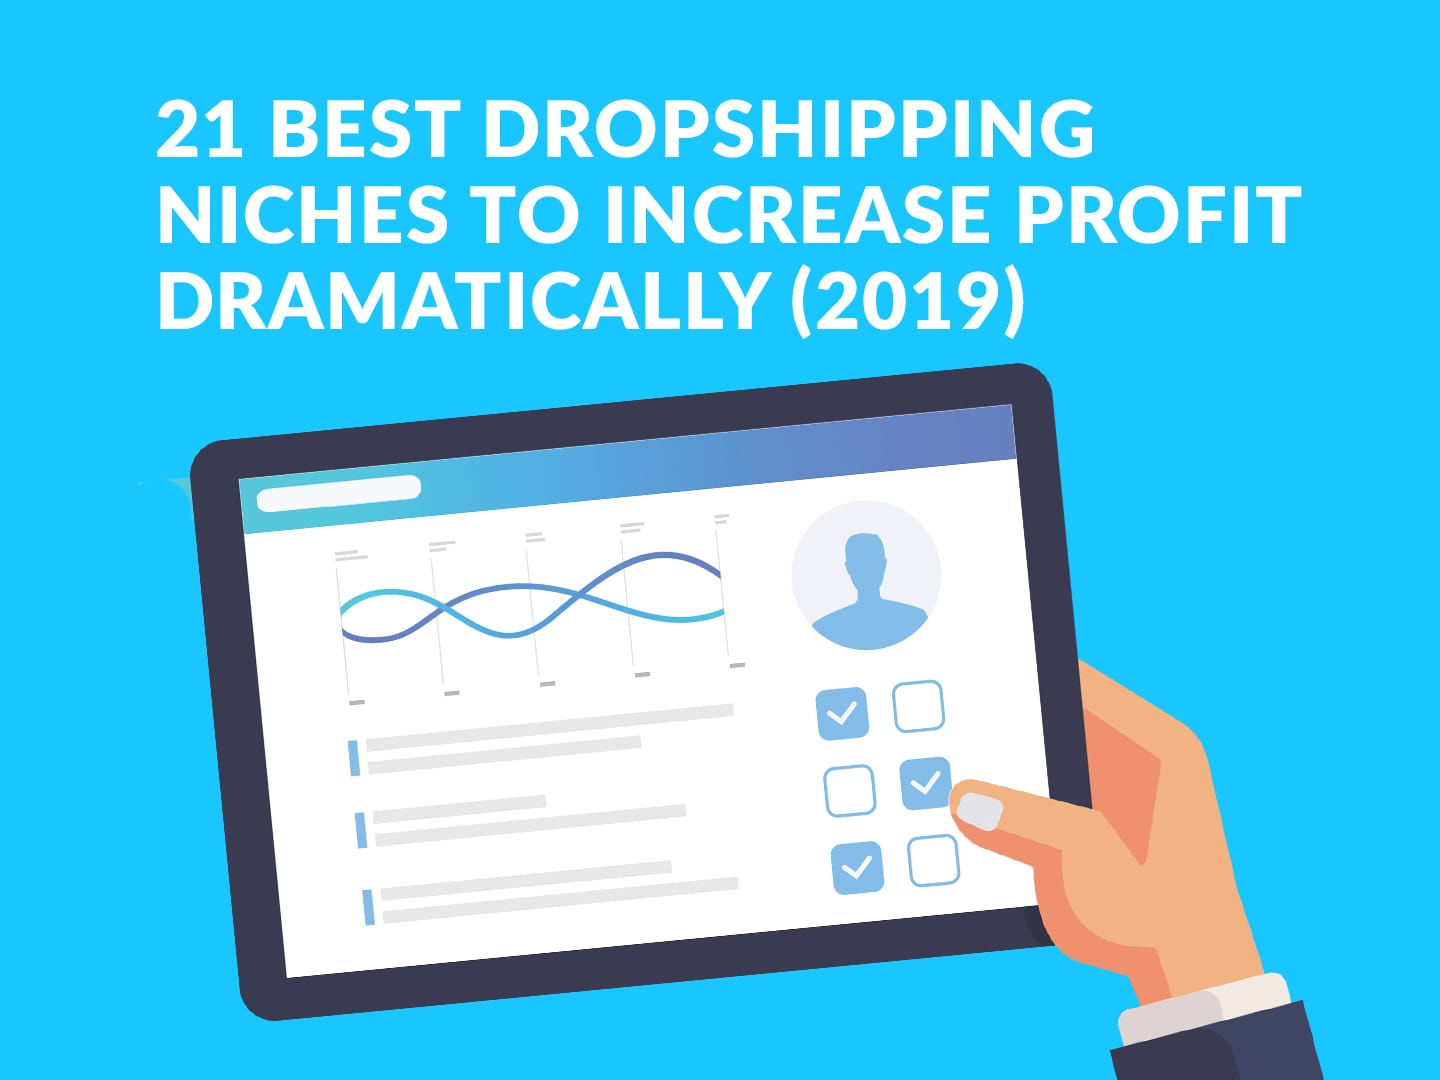 21-best-dropshipping-niches